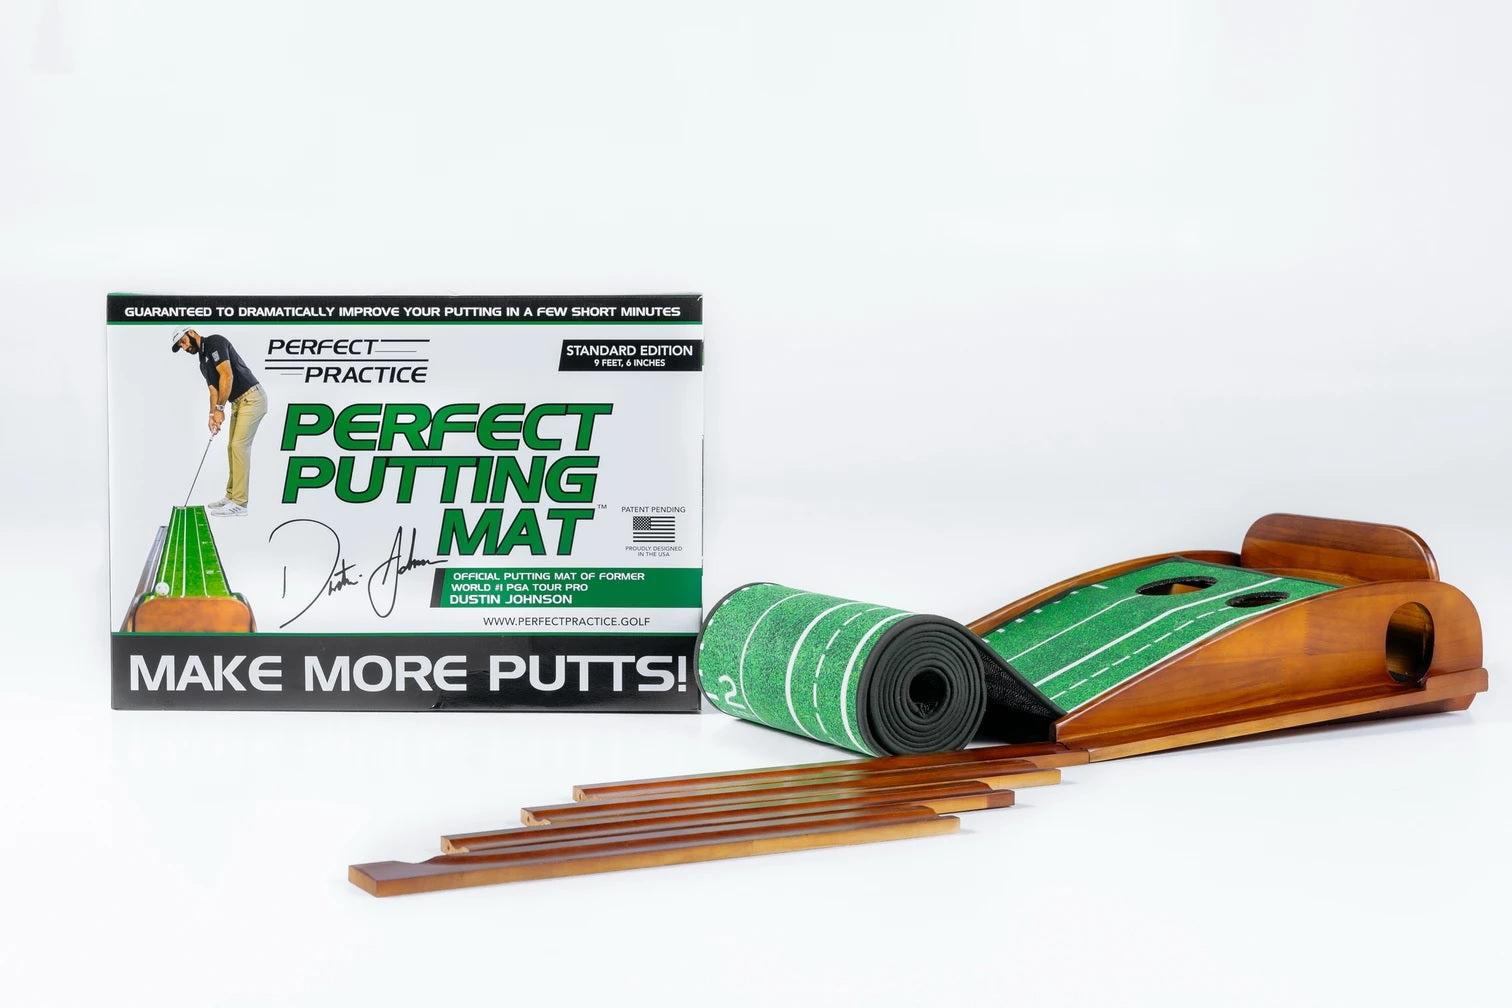 Perfect Practice Perfect Putting Mat™ - Standard Edition